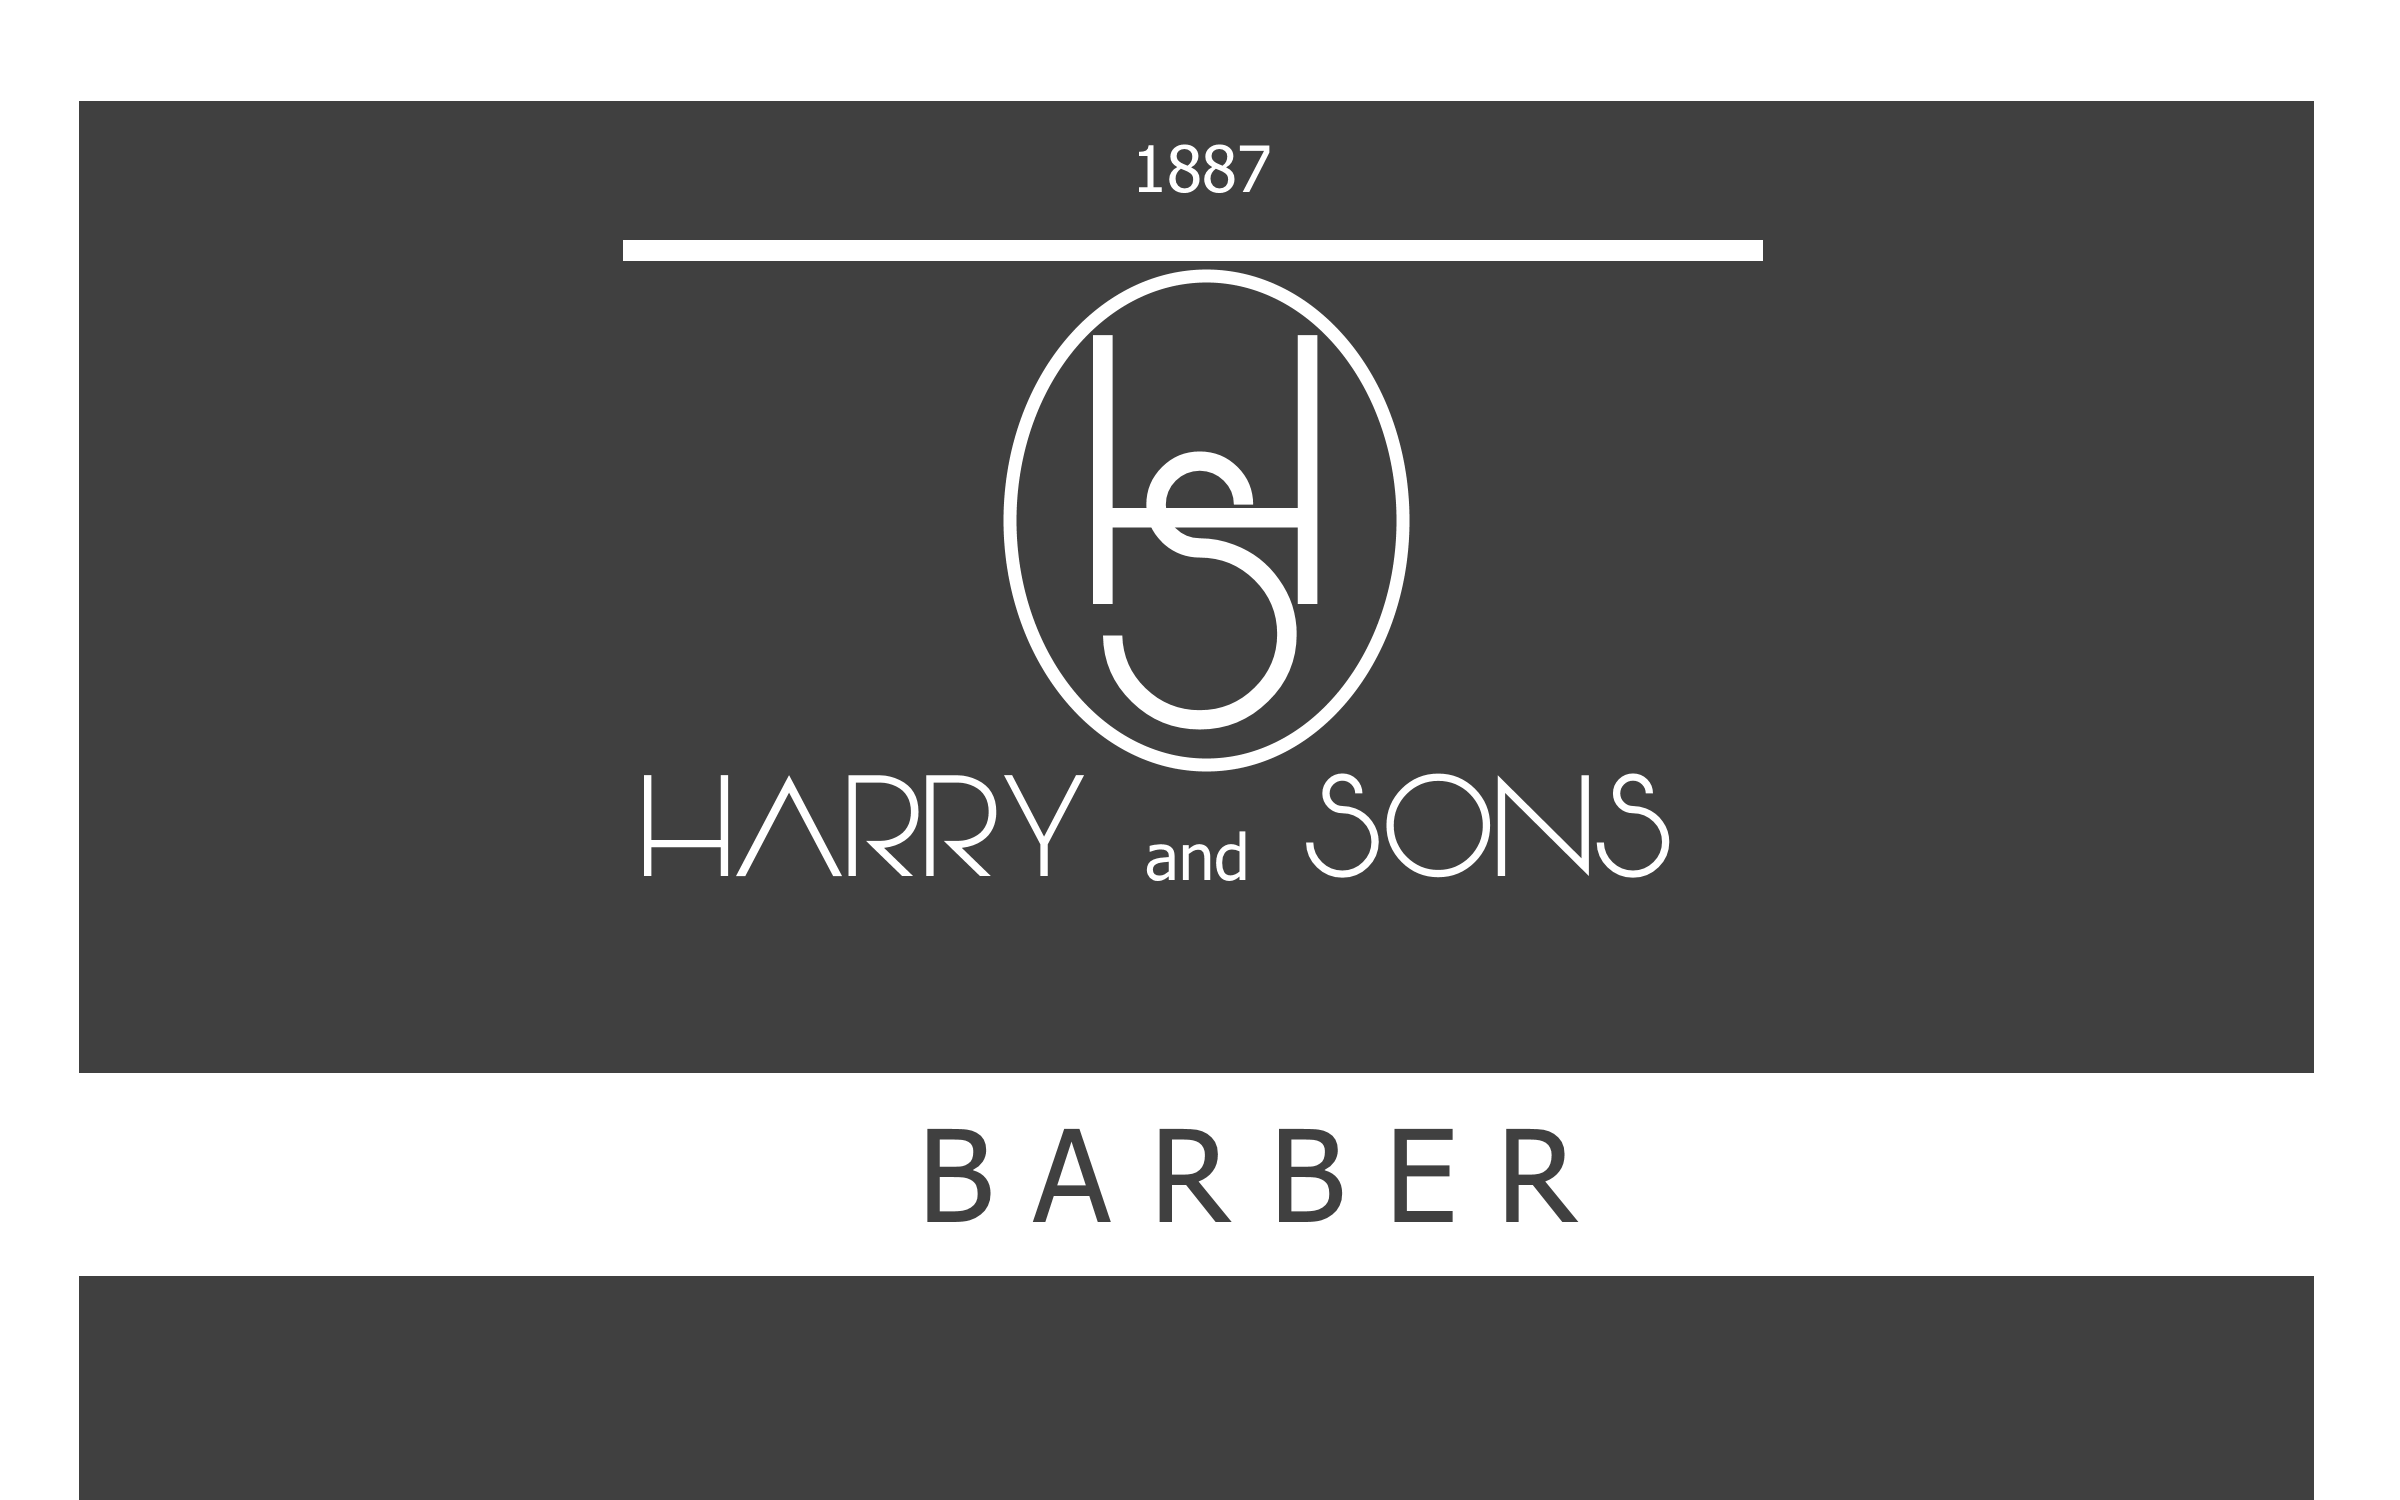 Logo Design by Roberto Bassi - Entry No. 129 in the Logo Design Contest Captivating Logo Design for Harry and Sons Barber.